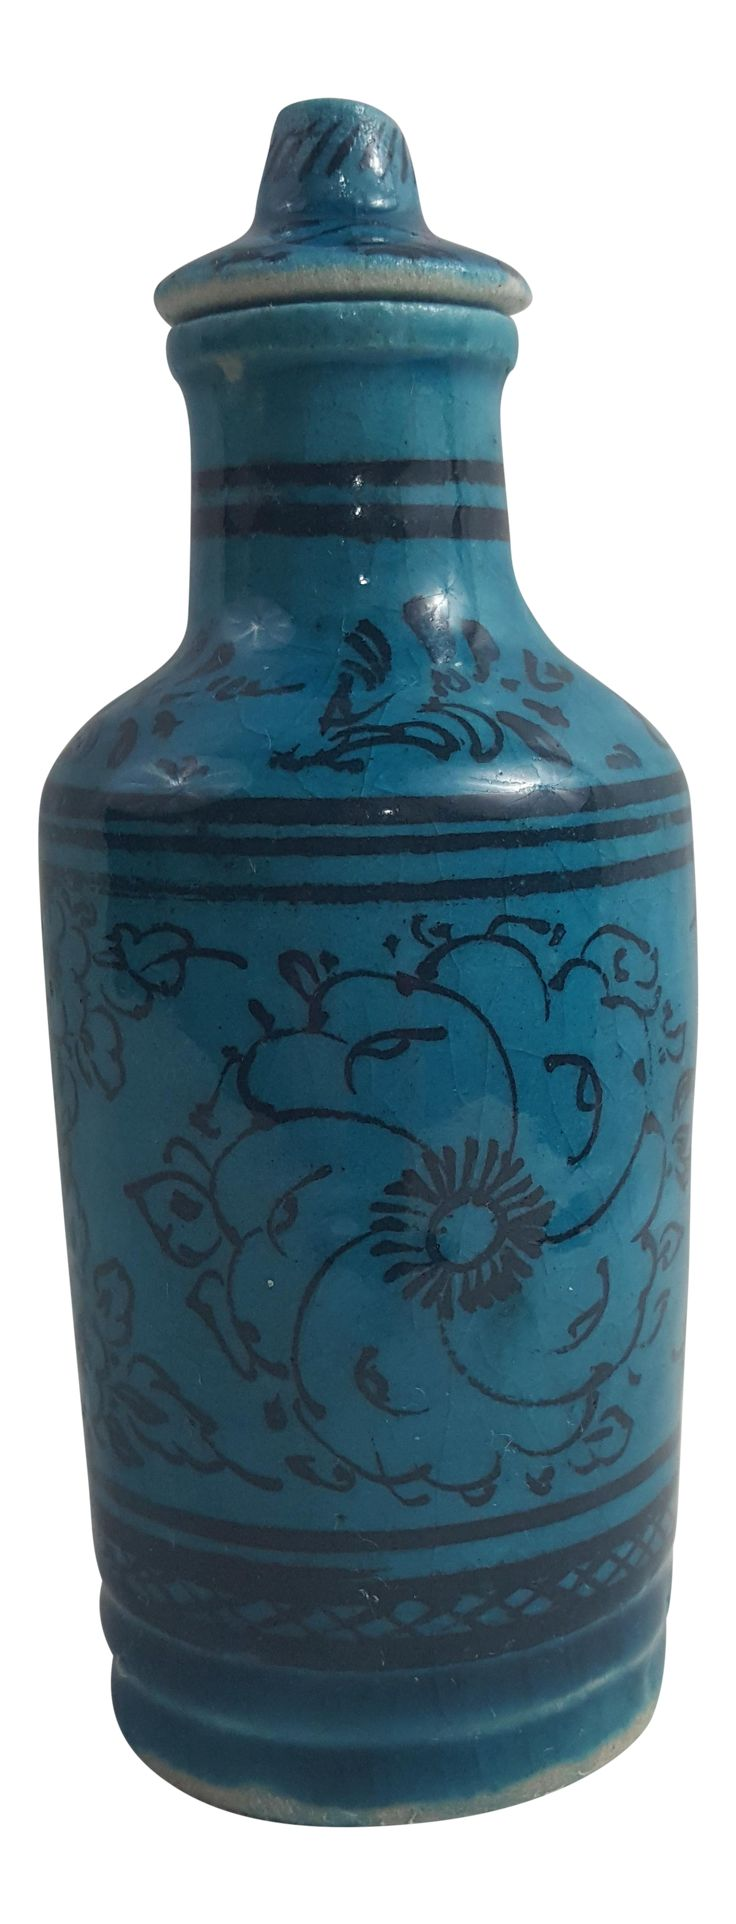 Teal Floral Motif Pottery Bottle on Chairish.com